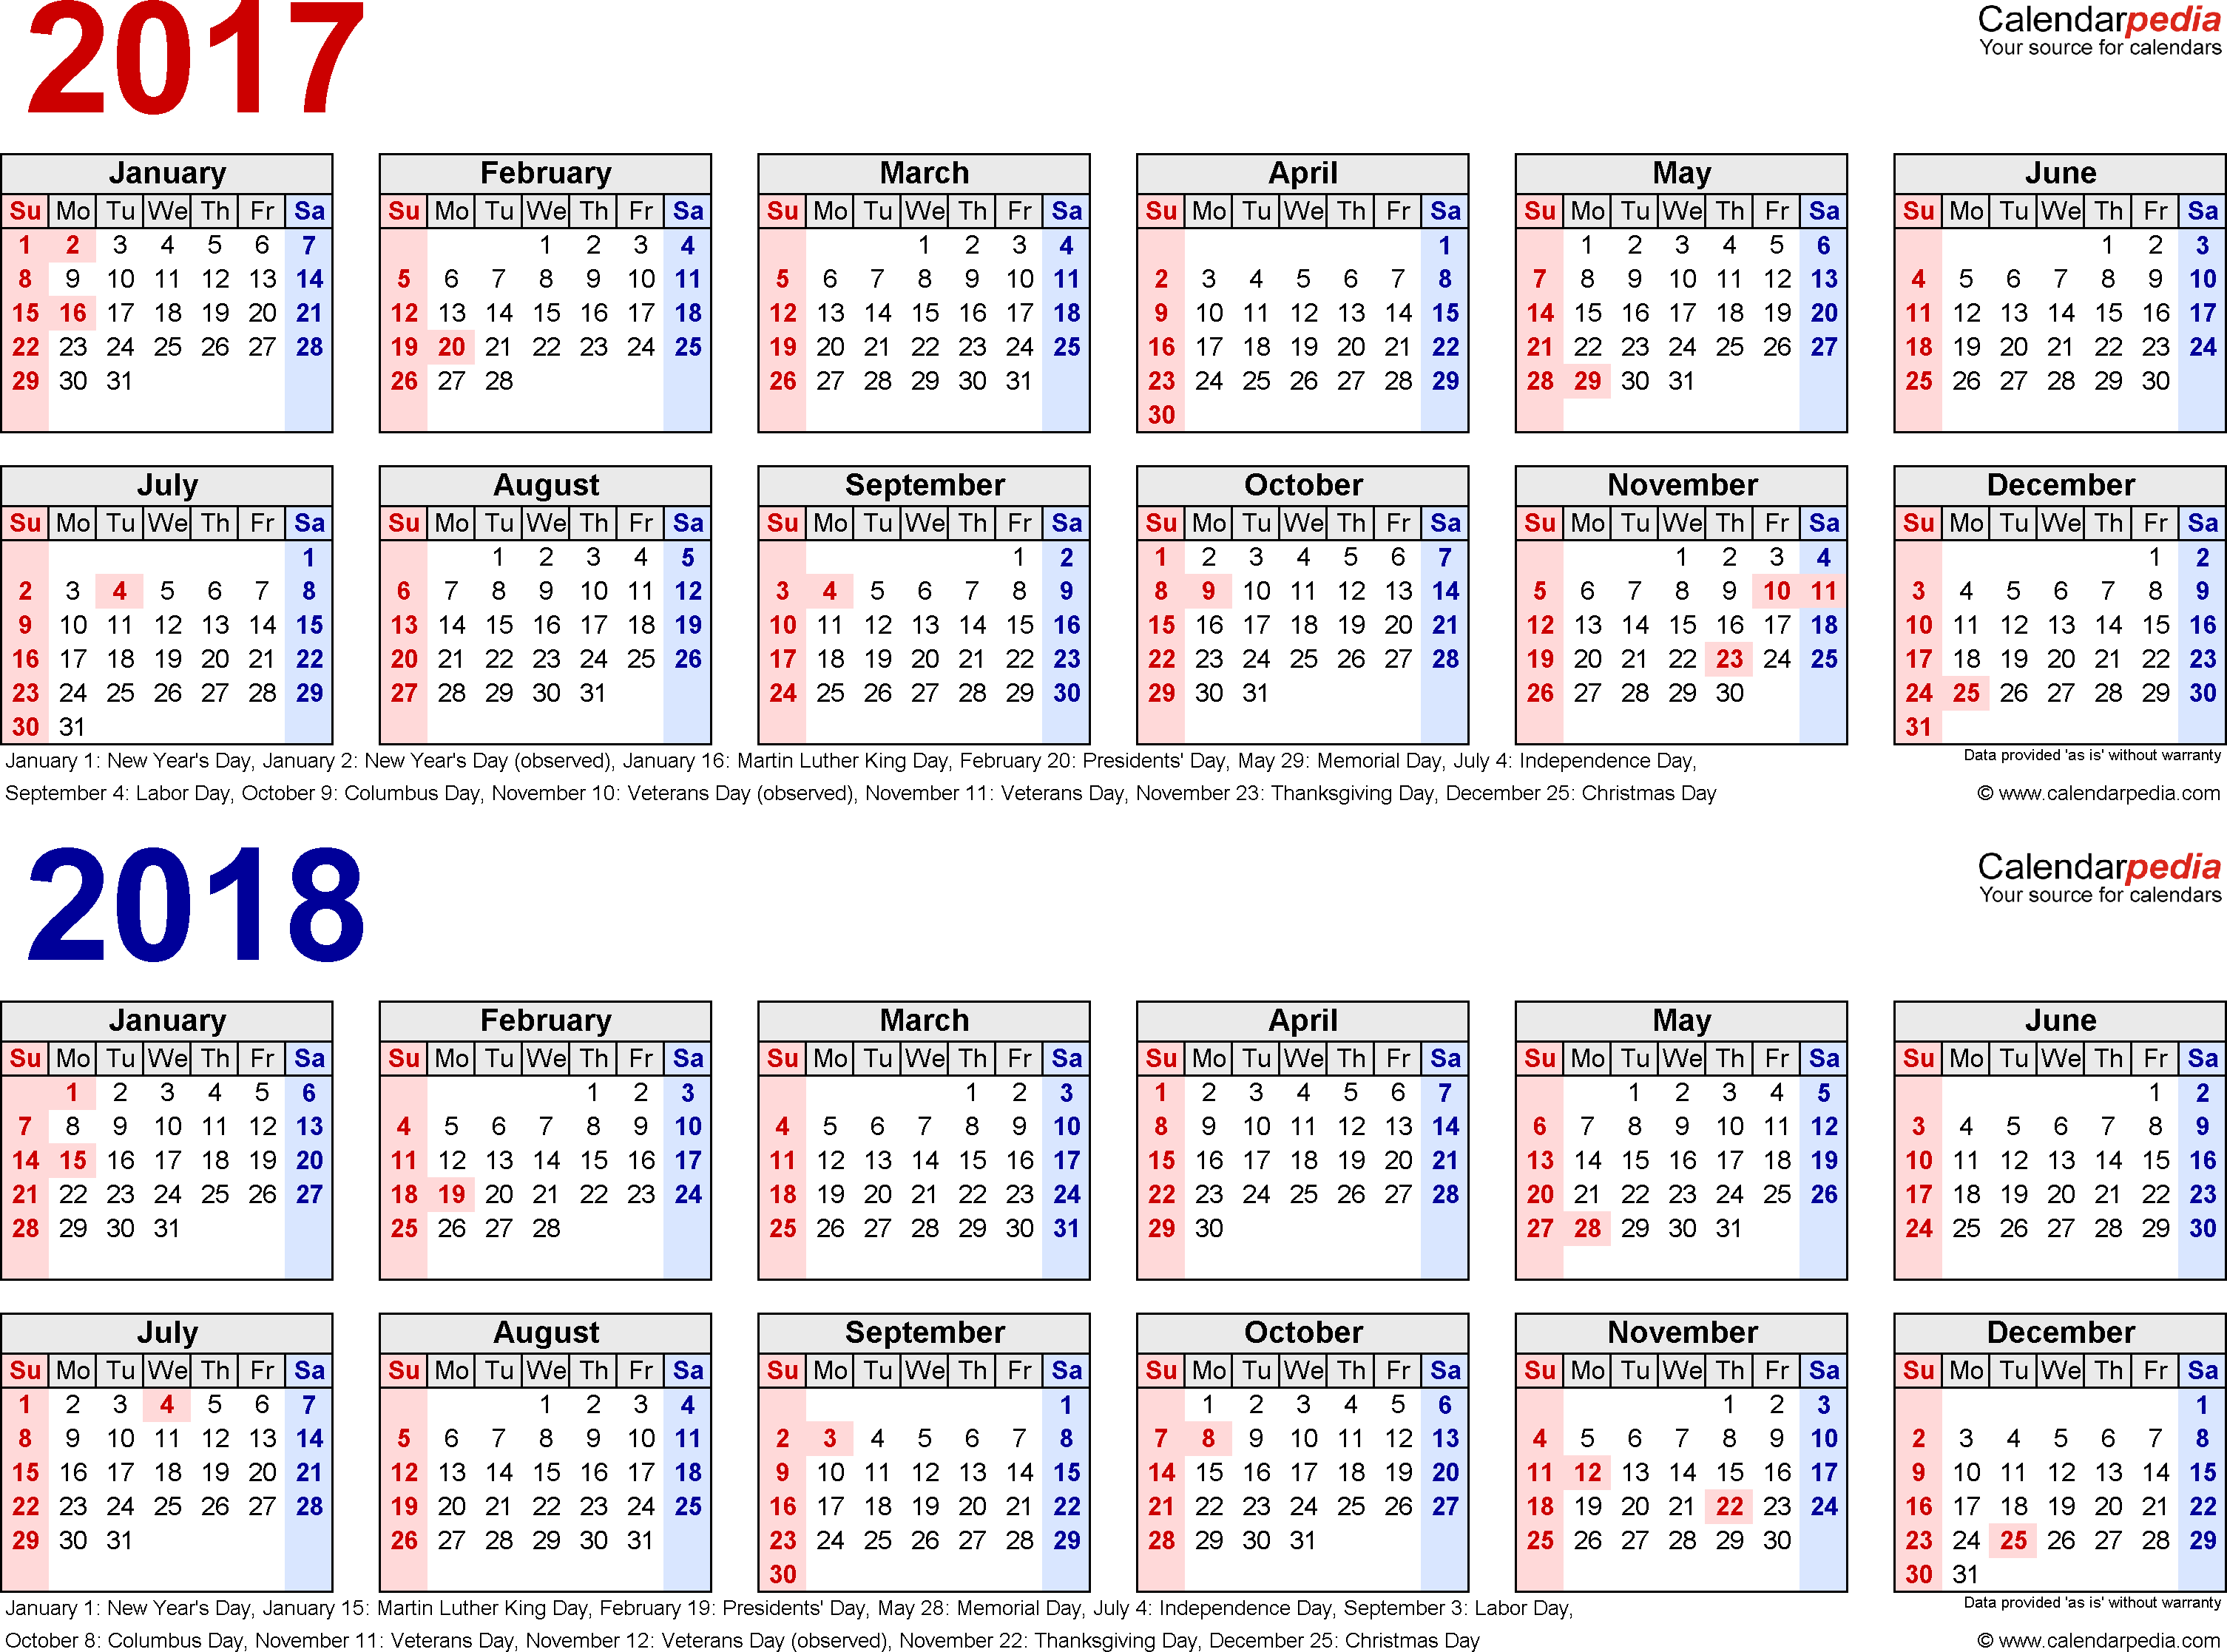 template 1 excel template for two year calendar 20172018 landscape orientation